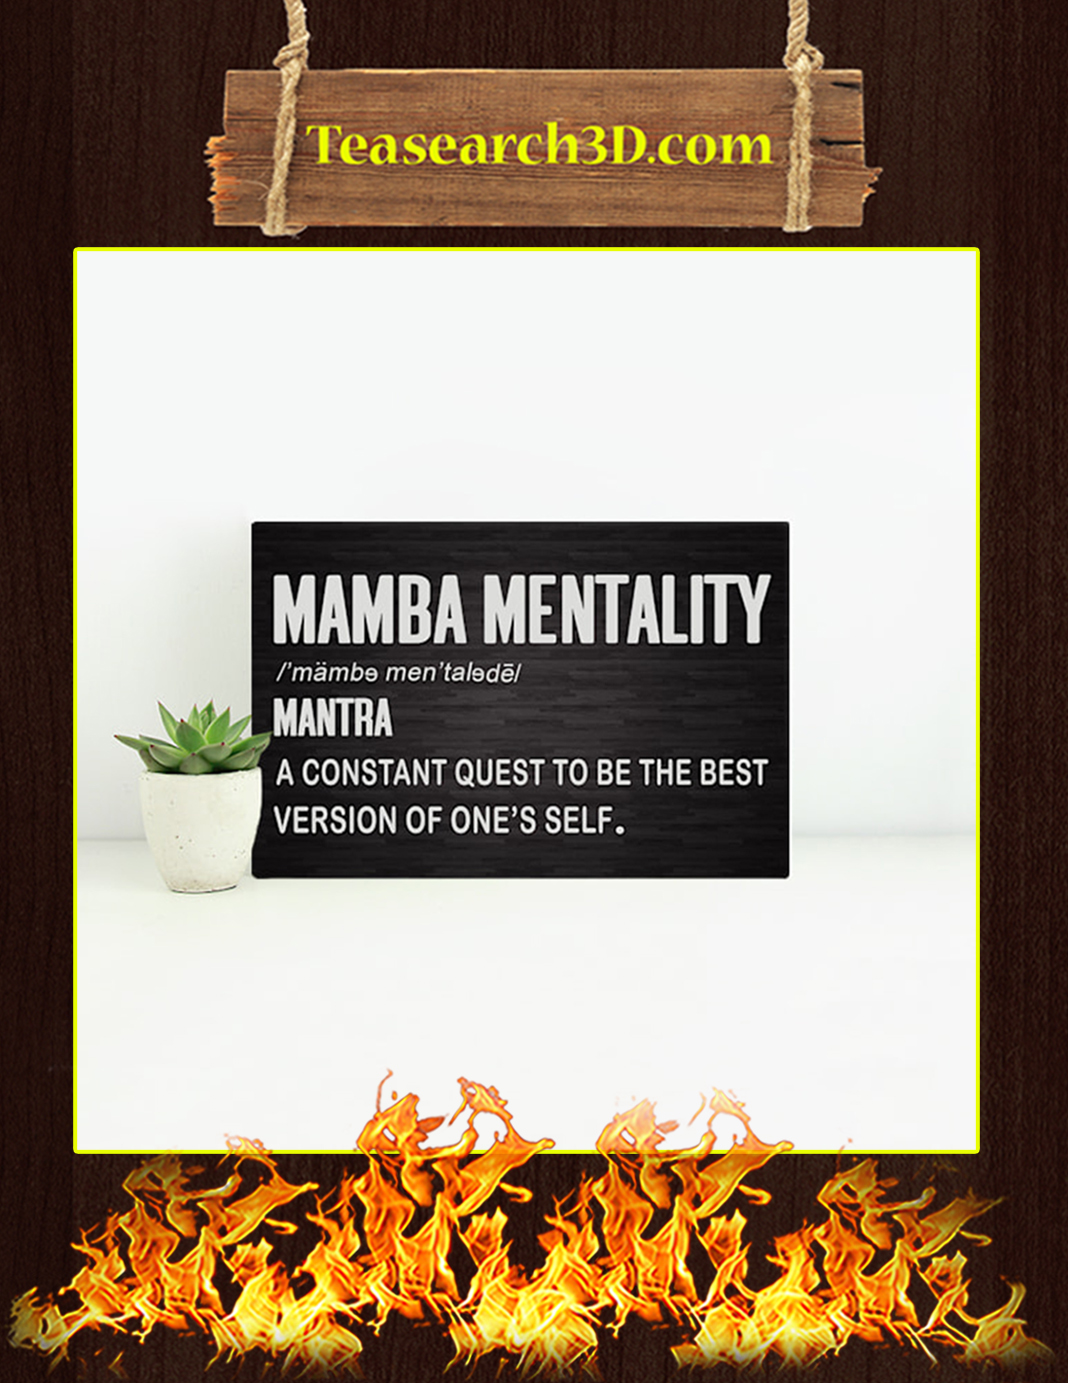 Mamba Mentality A Constant Quest To Be The Best Version Of One's Self Canvas Prints - Medium